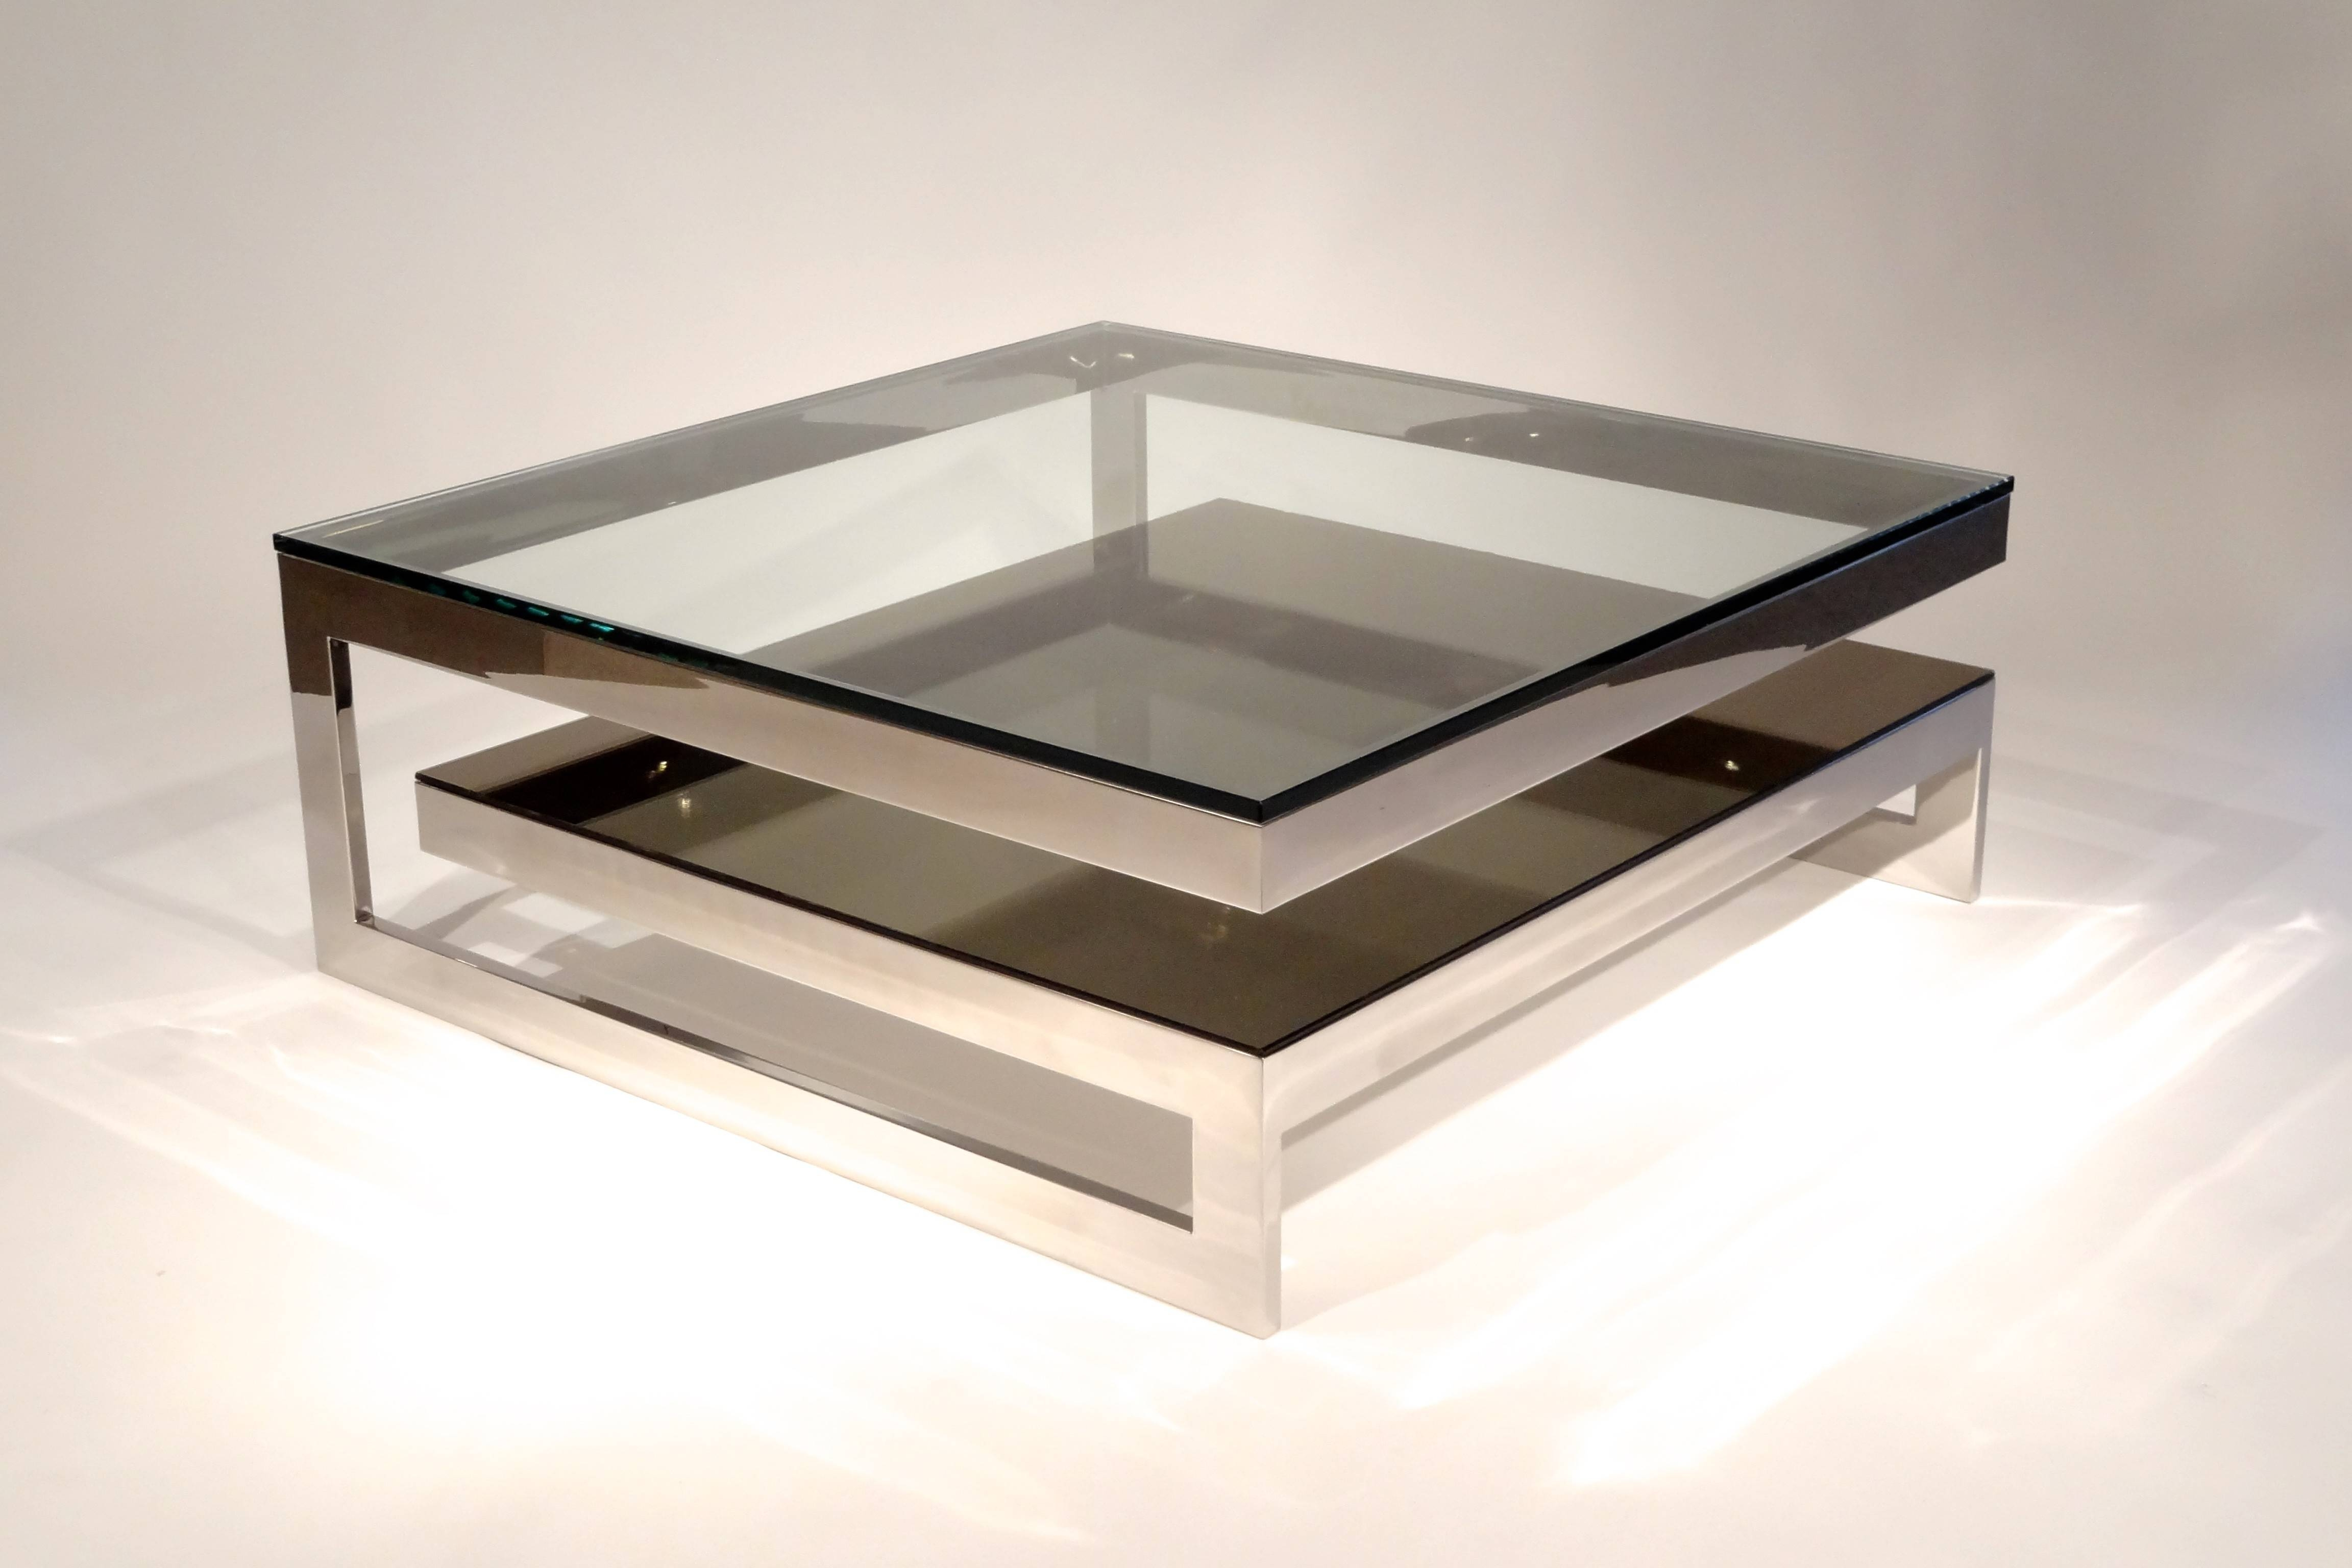 Sturdy Modern Glass Coffee Table Metal Legs Construction 4 Legs with regard to Chrome And Glass Coffee Tables (Image 25 of 30)